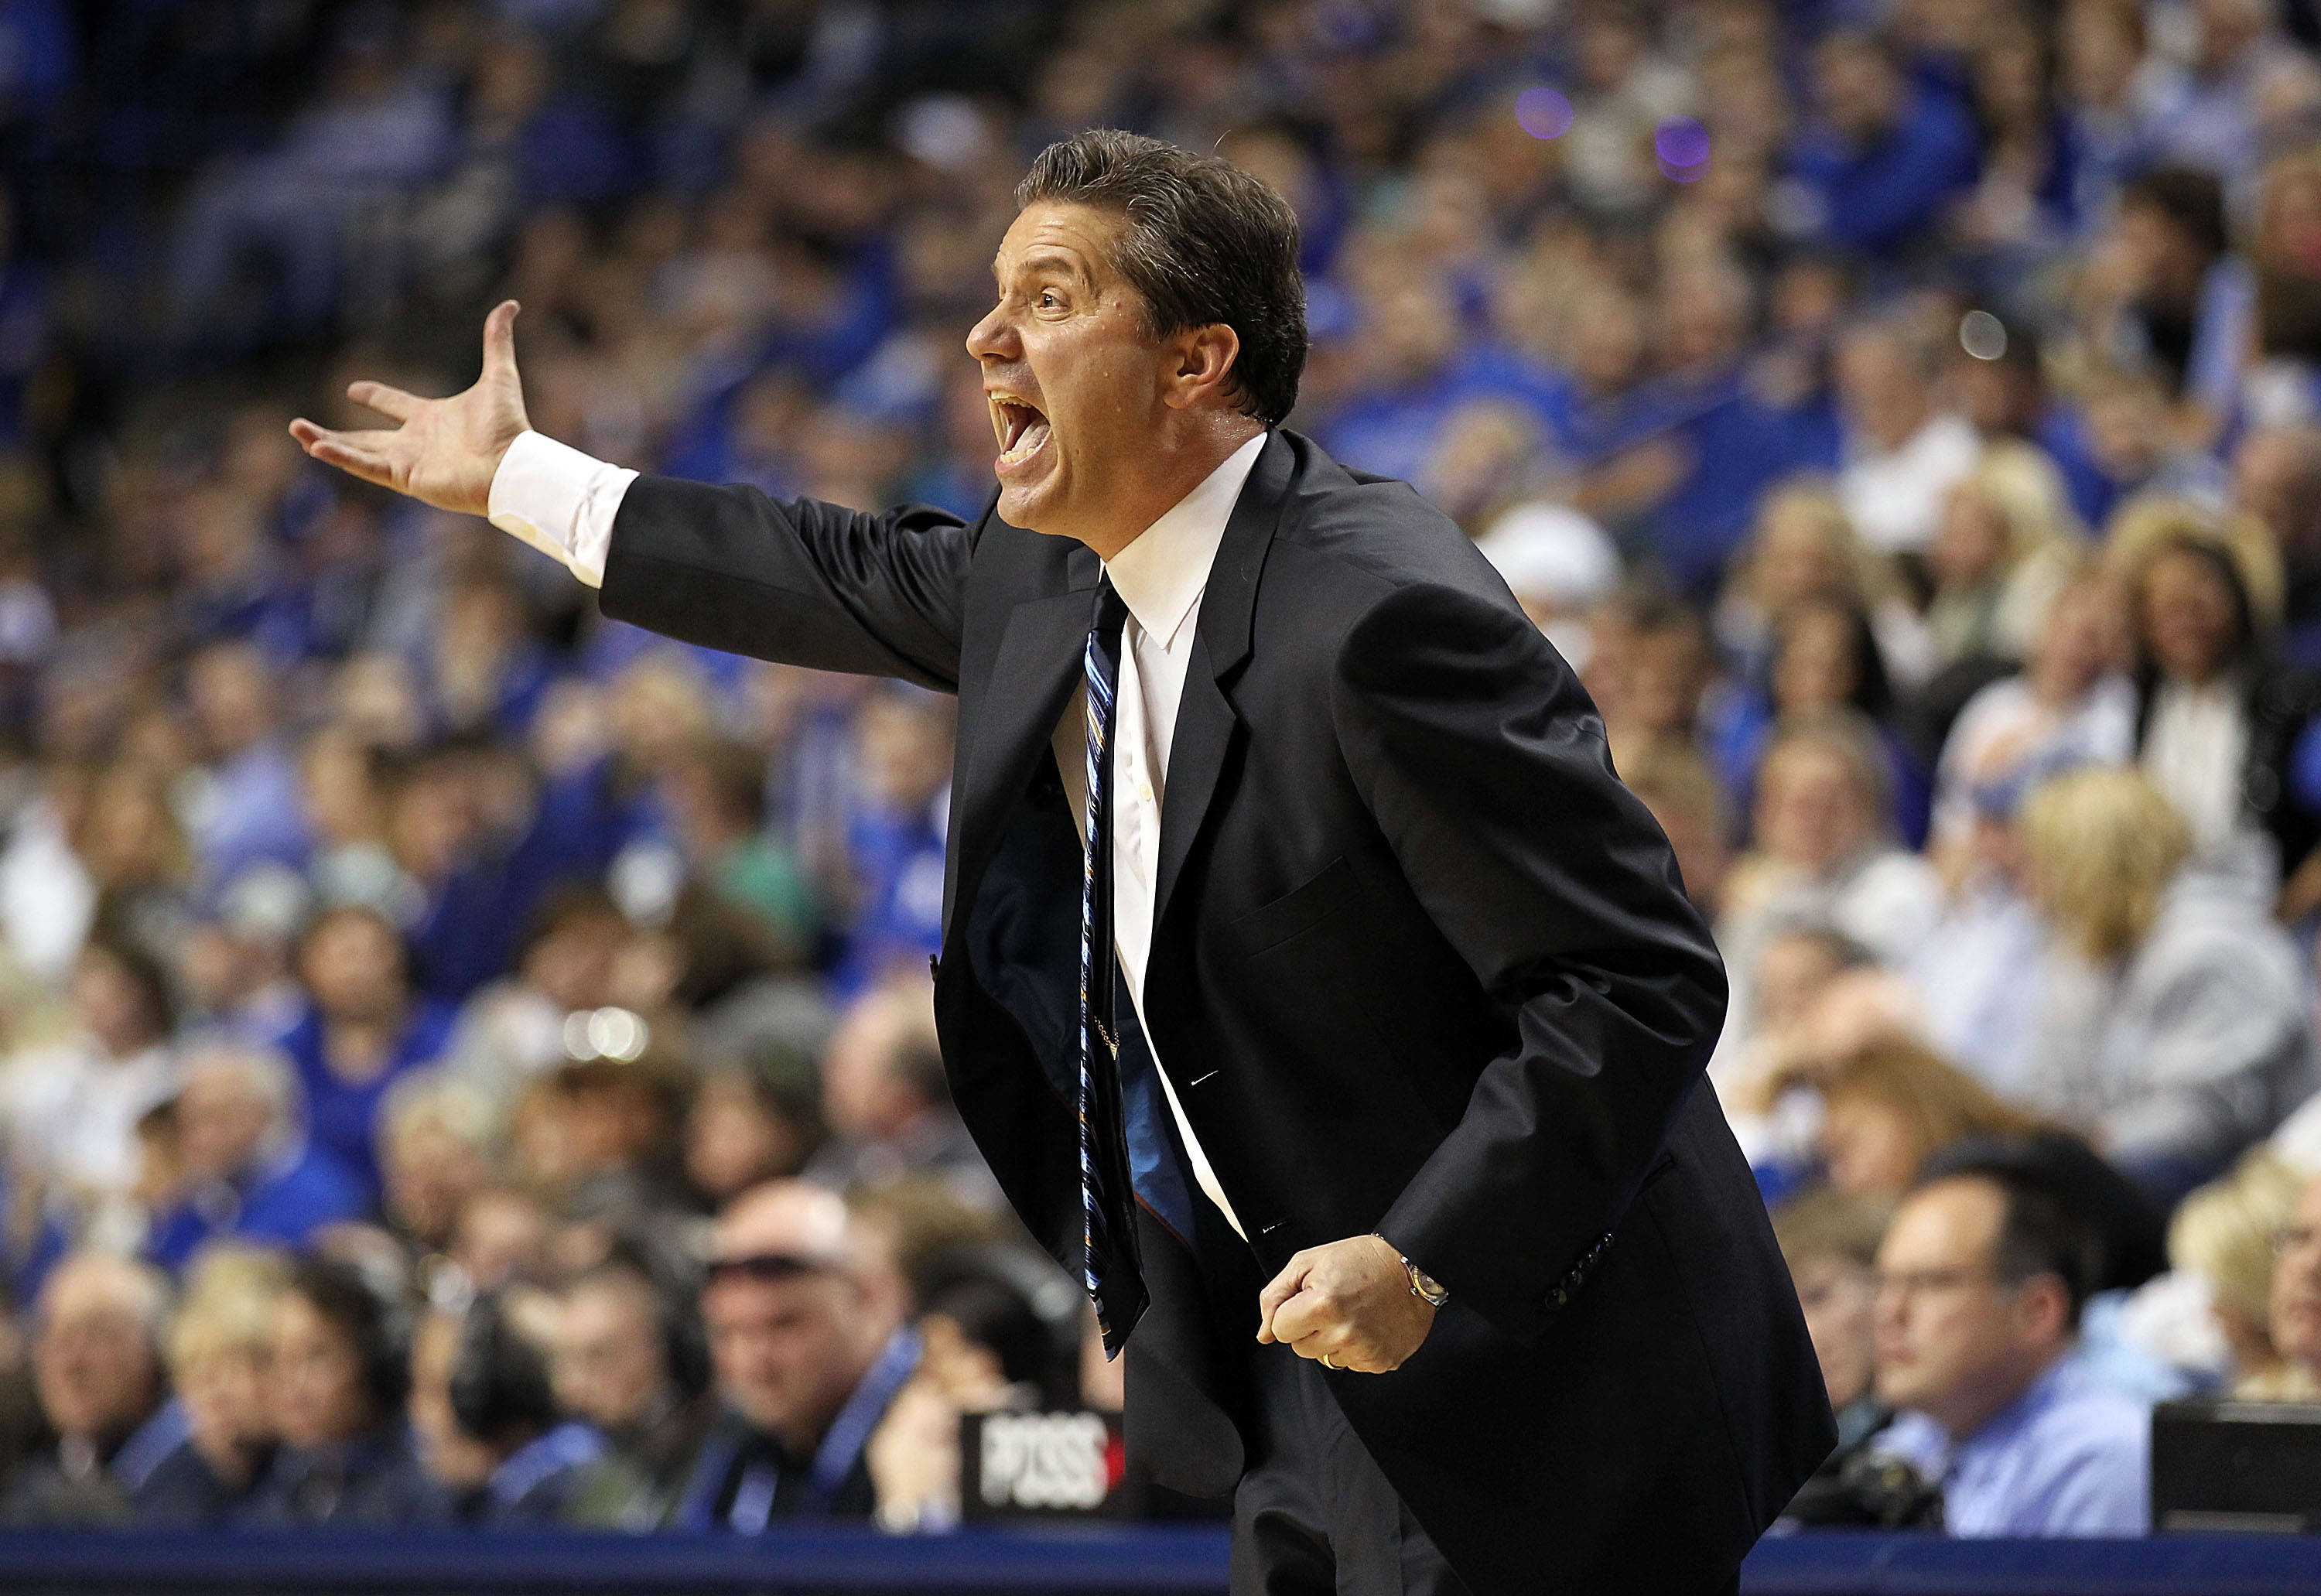 LEXINGTON, KY - JANUARY 29:  John Calipari the Head Coach of the Kentucky Wildcats gives instructions to his team during the SEC game against the Georgia Bulldogs at Rupp Arena on January 29, 2011 in Lexington, Kentucky. Kentucky won 66-60.  (Photo by And